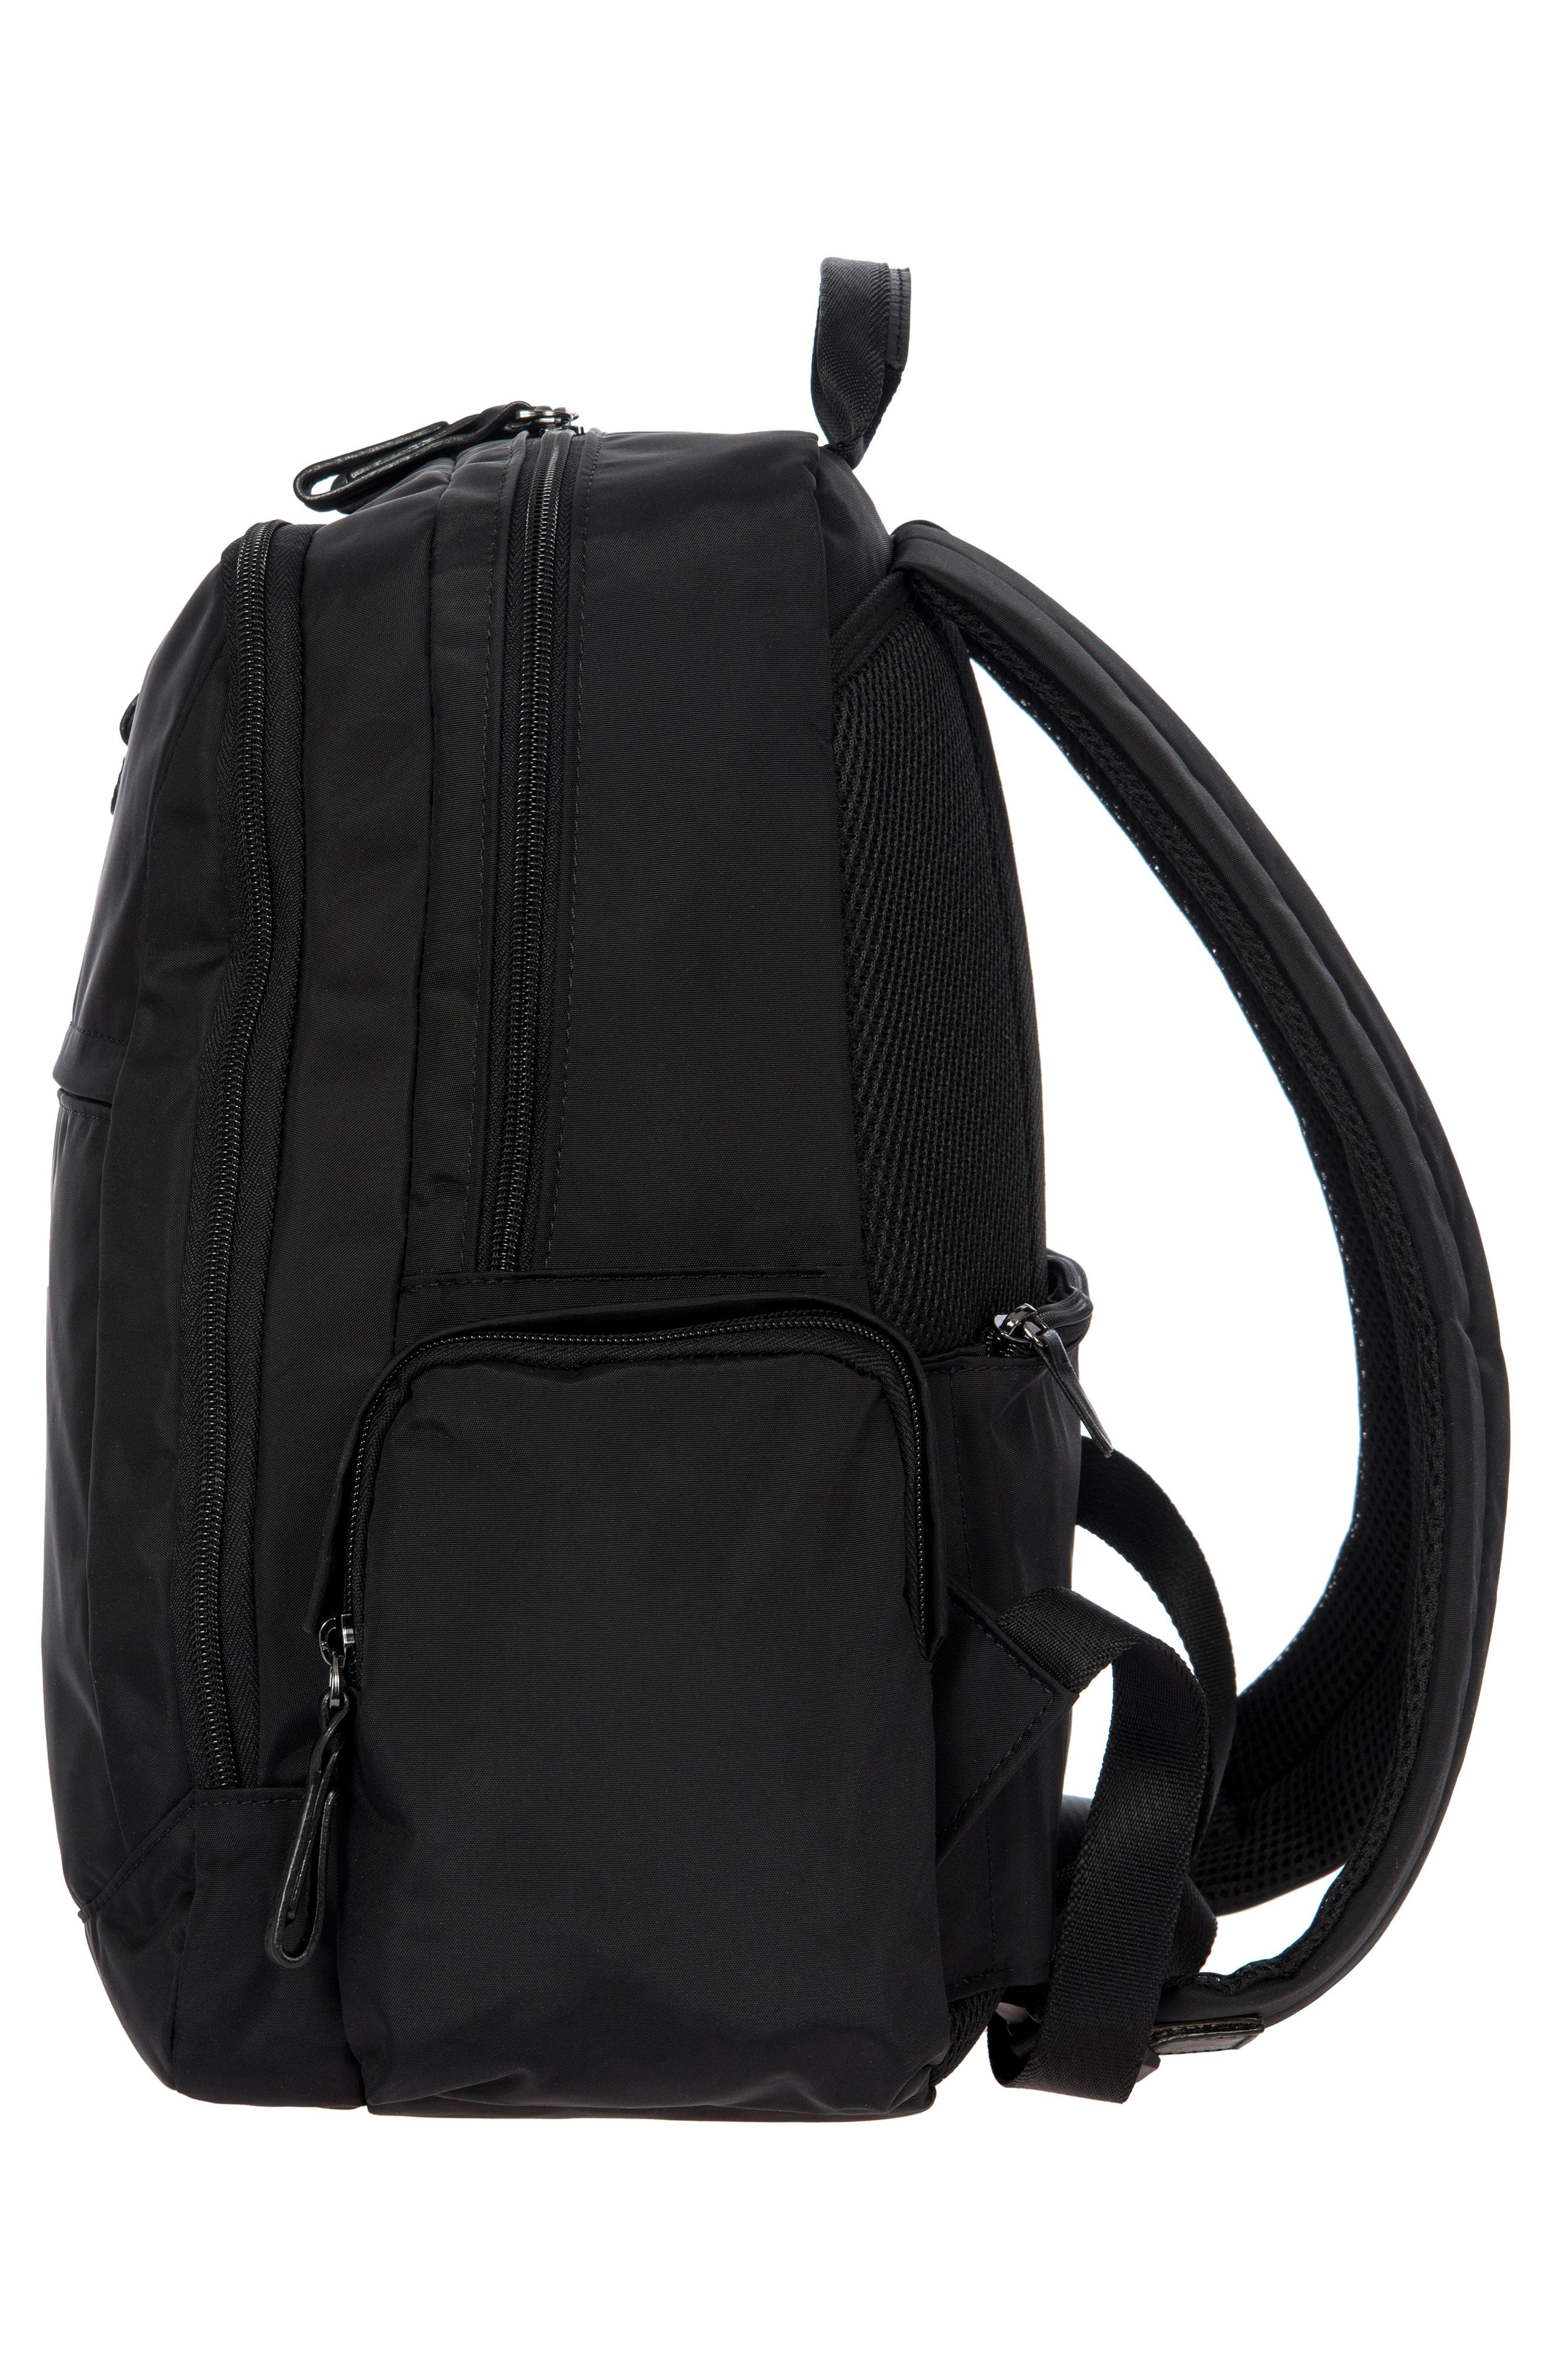 X-Travel Nomad Backpack,                             Alternate thumbnail 4, color,                             001